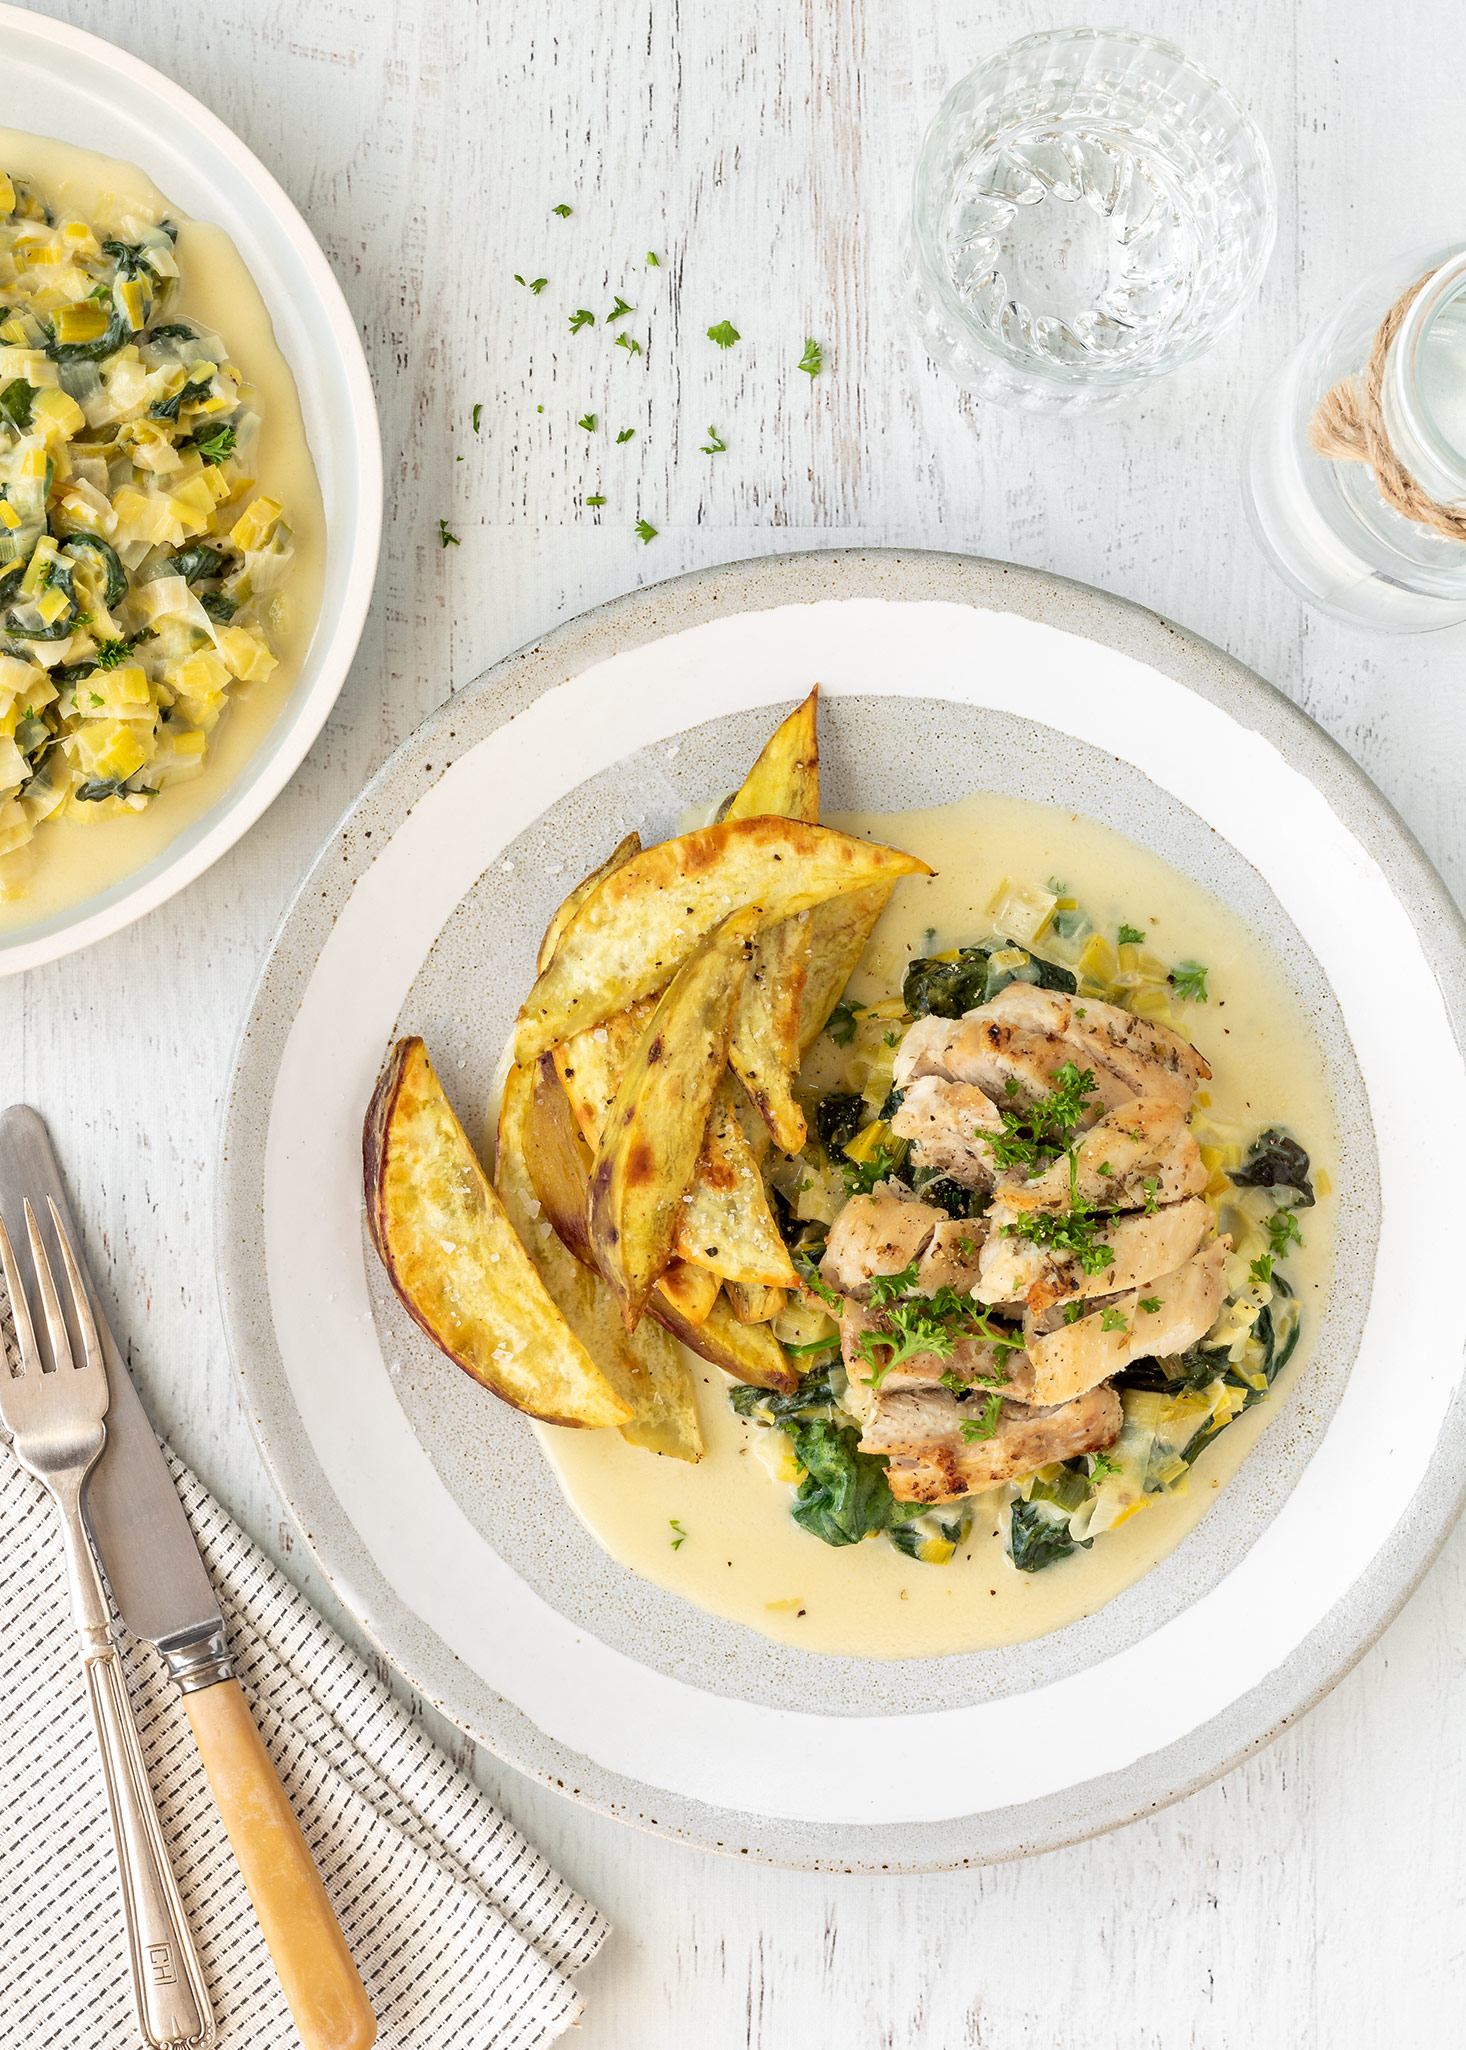 Chicken on creamy leeks and spinach with kumara wedges.